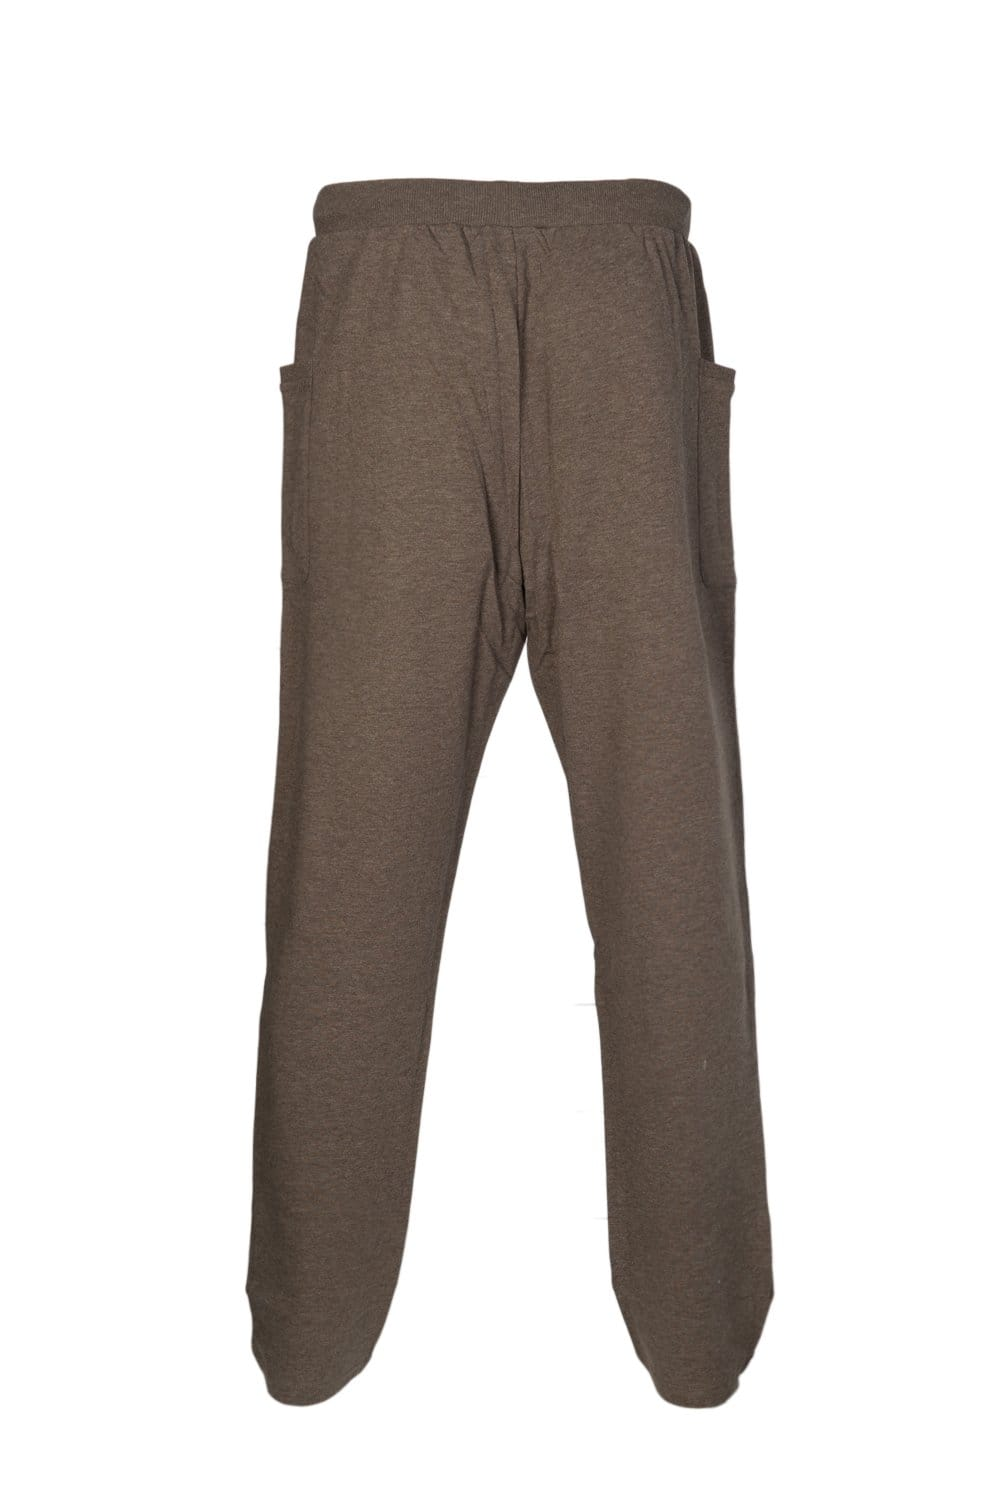 Find great deals on eBay for brown jogging pants. Shop with confidence.